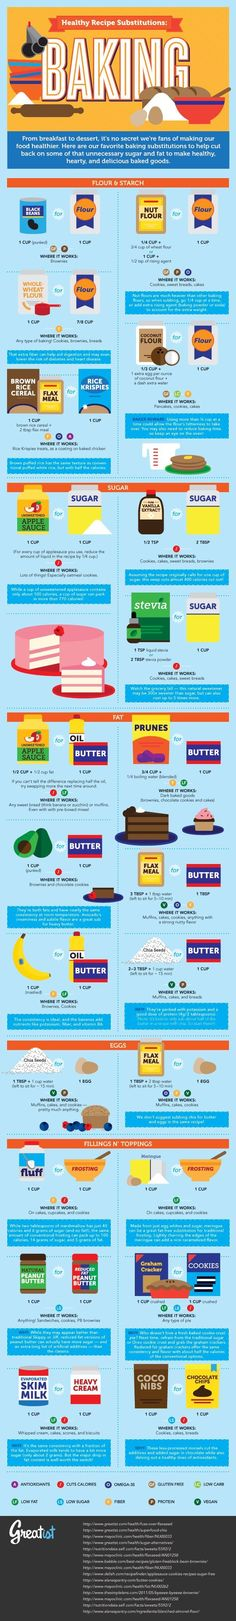 The Ultimate Guide to Healthier Baking [Infographic] #healthier #baking #infographic